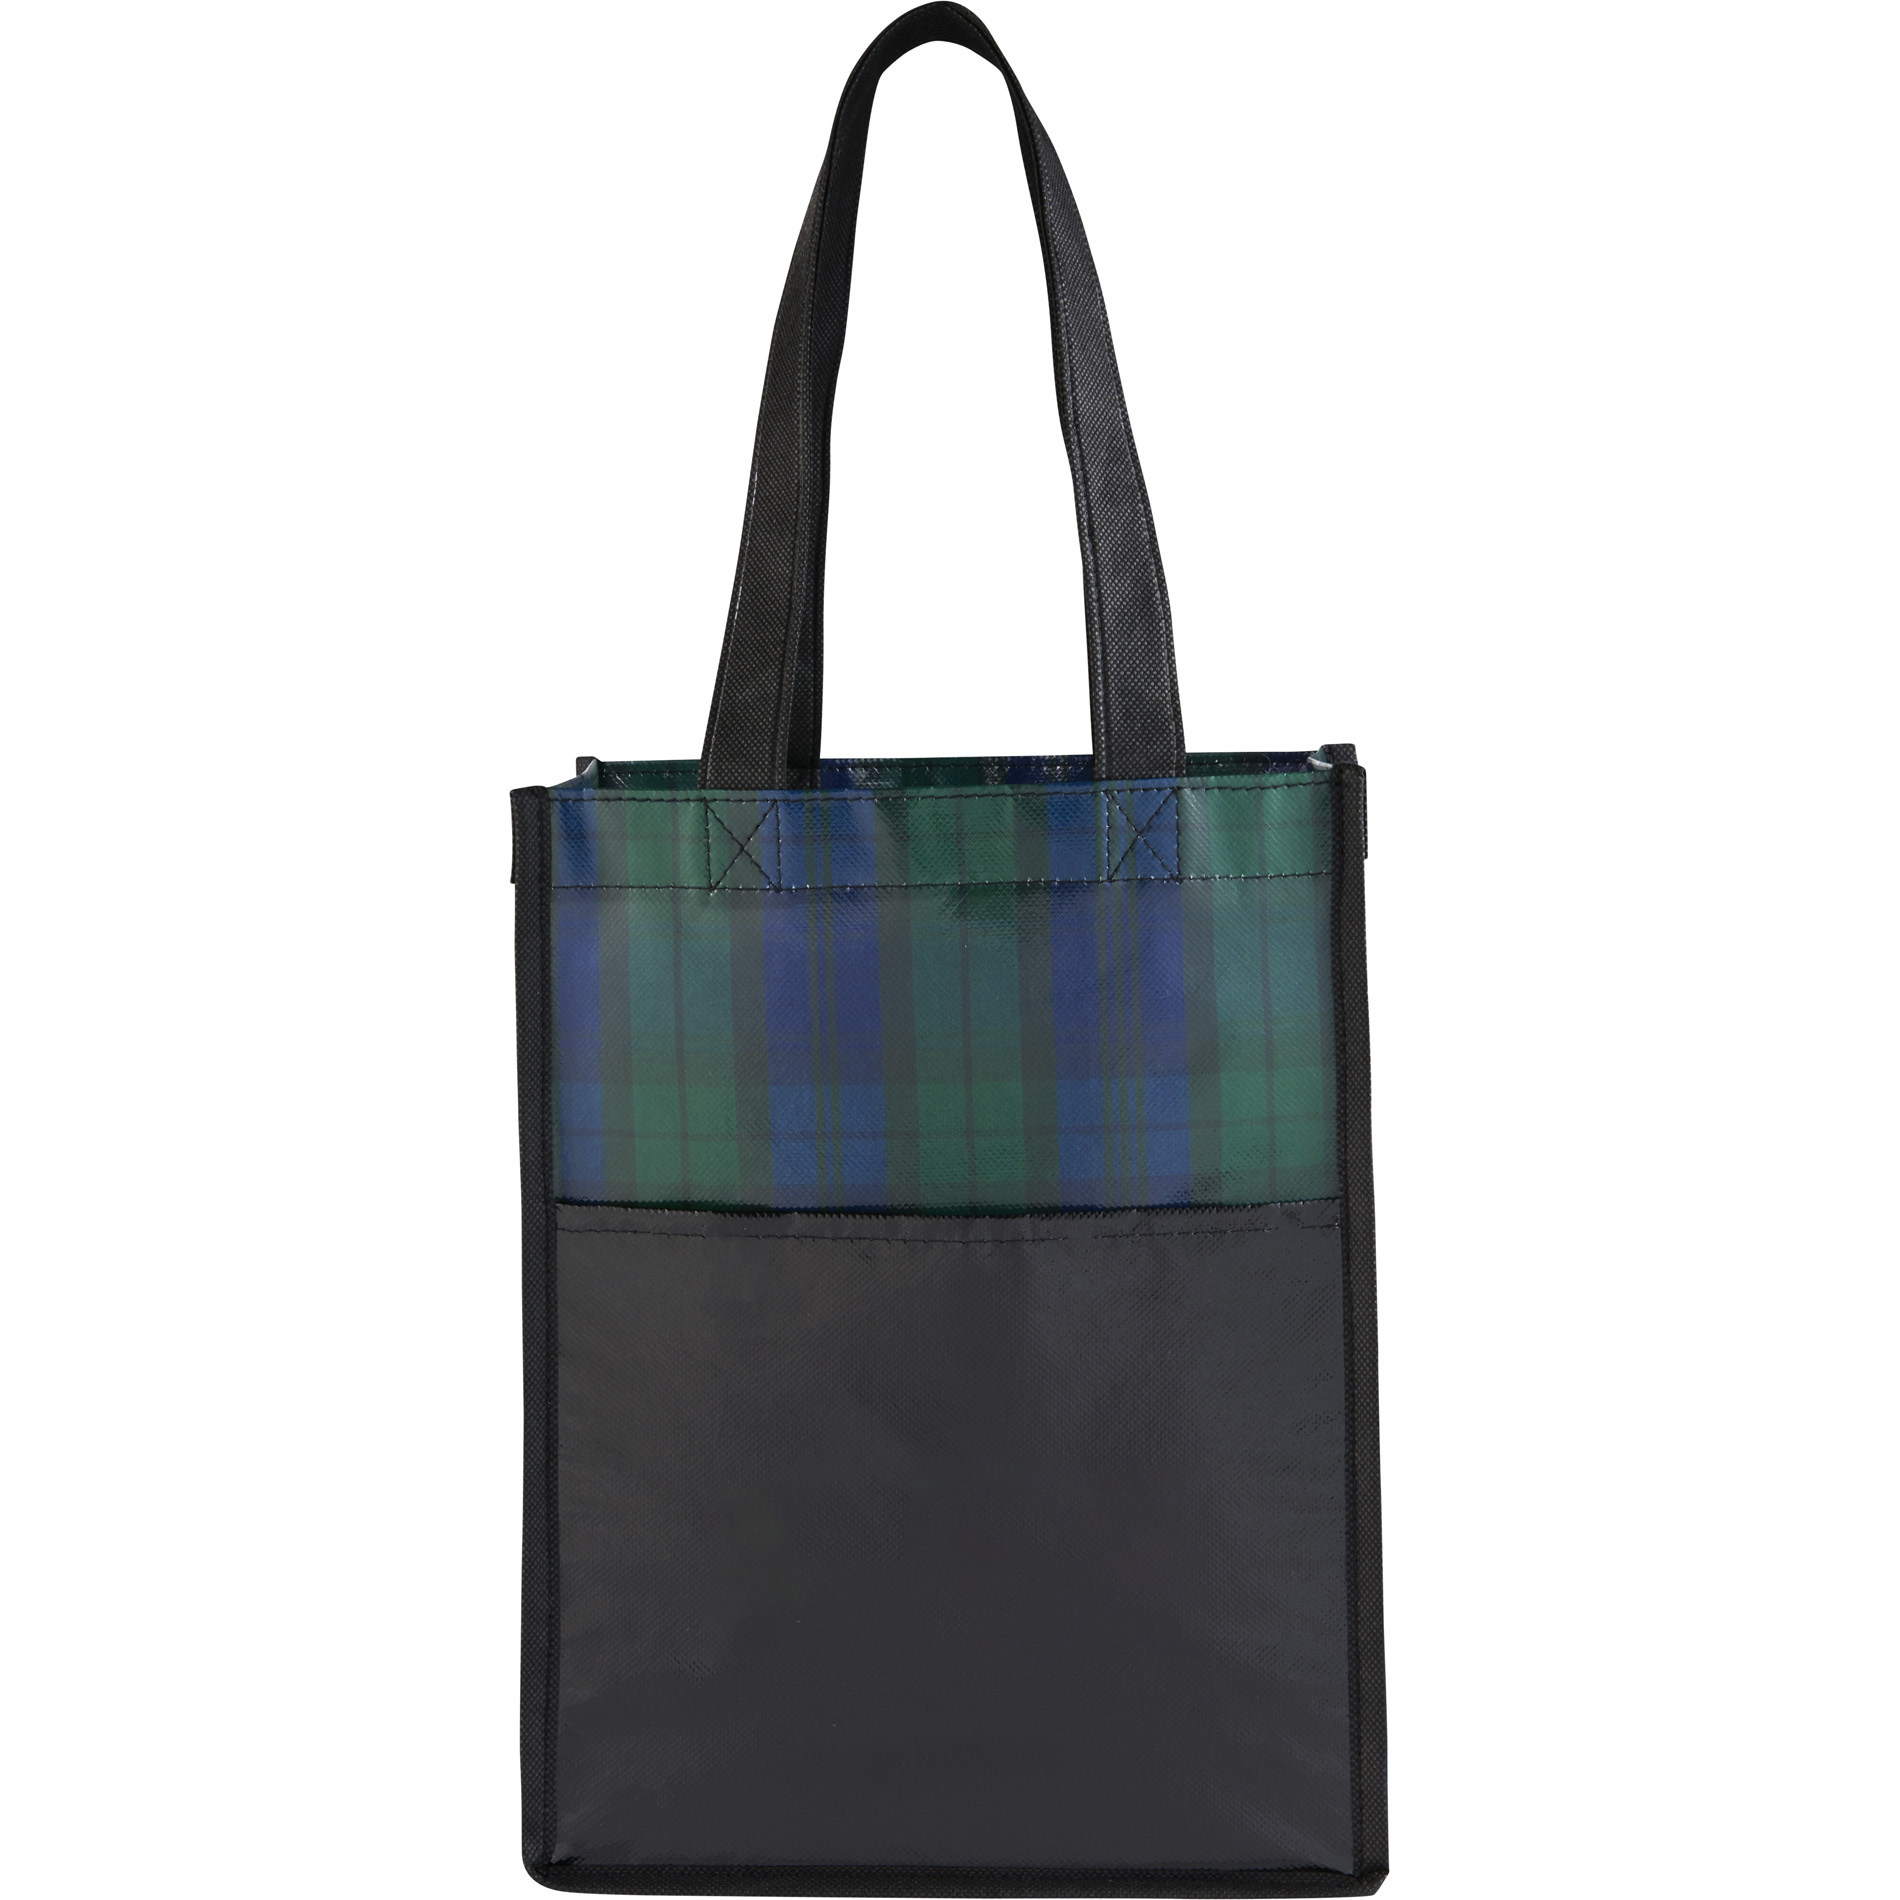 LEEDS 2160-23 - Buffalo Plaid NW Mini Gift Tote